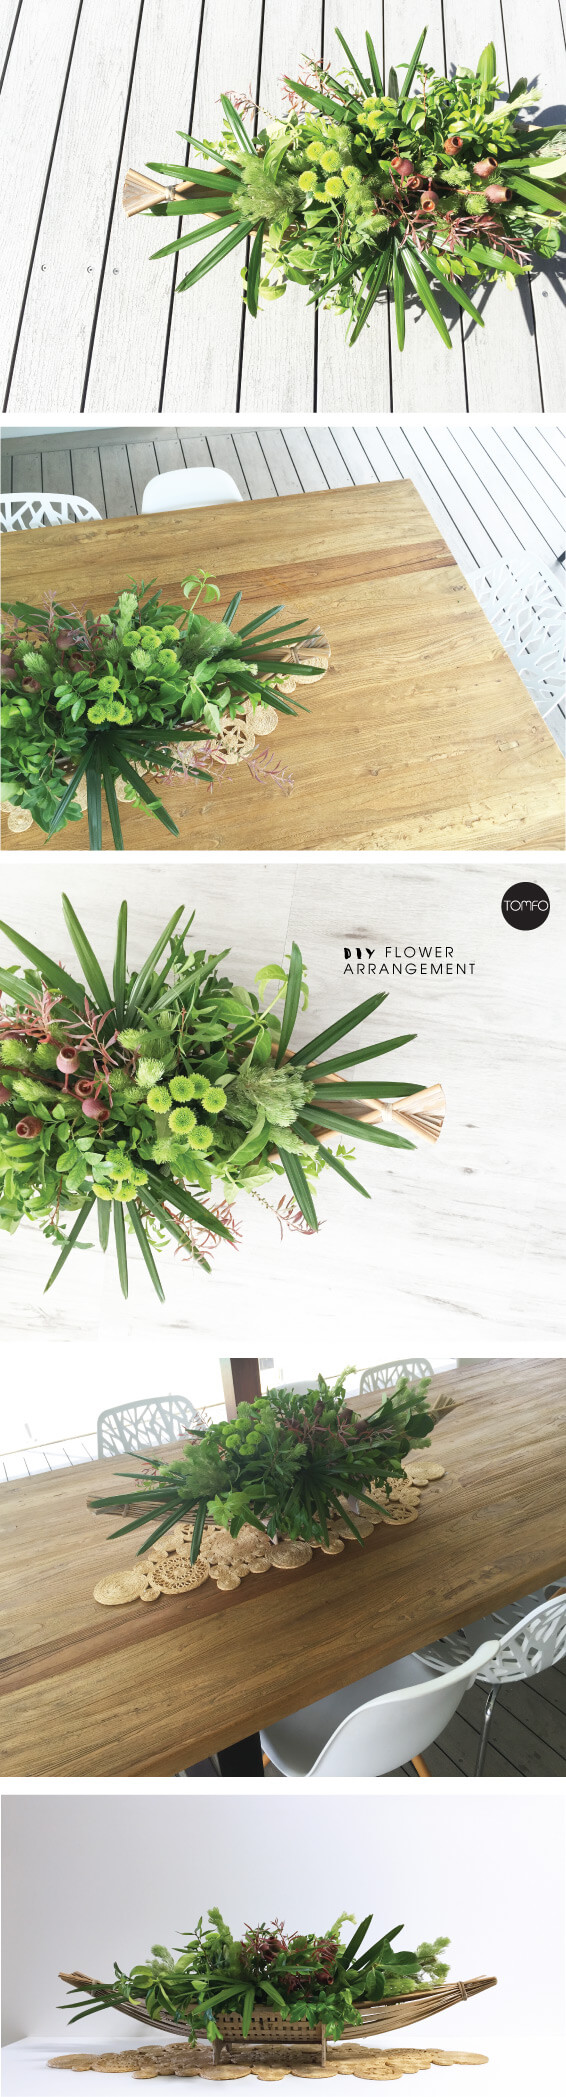 TOMFO-Easy-Diy-Flower-arrangement